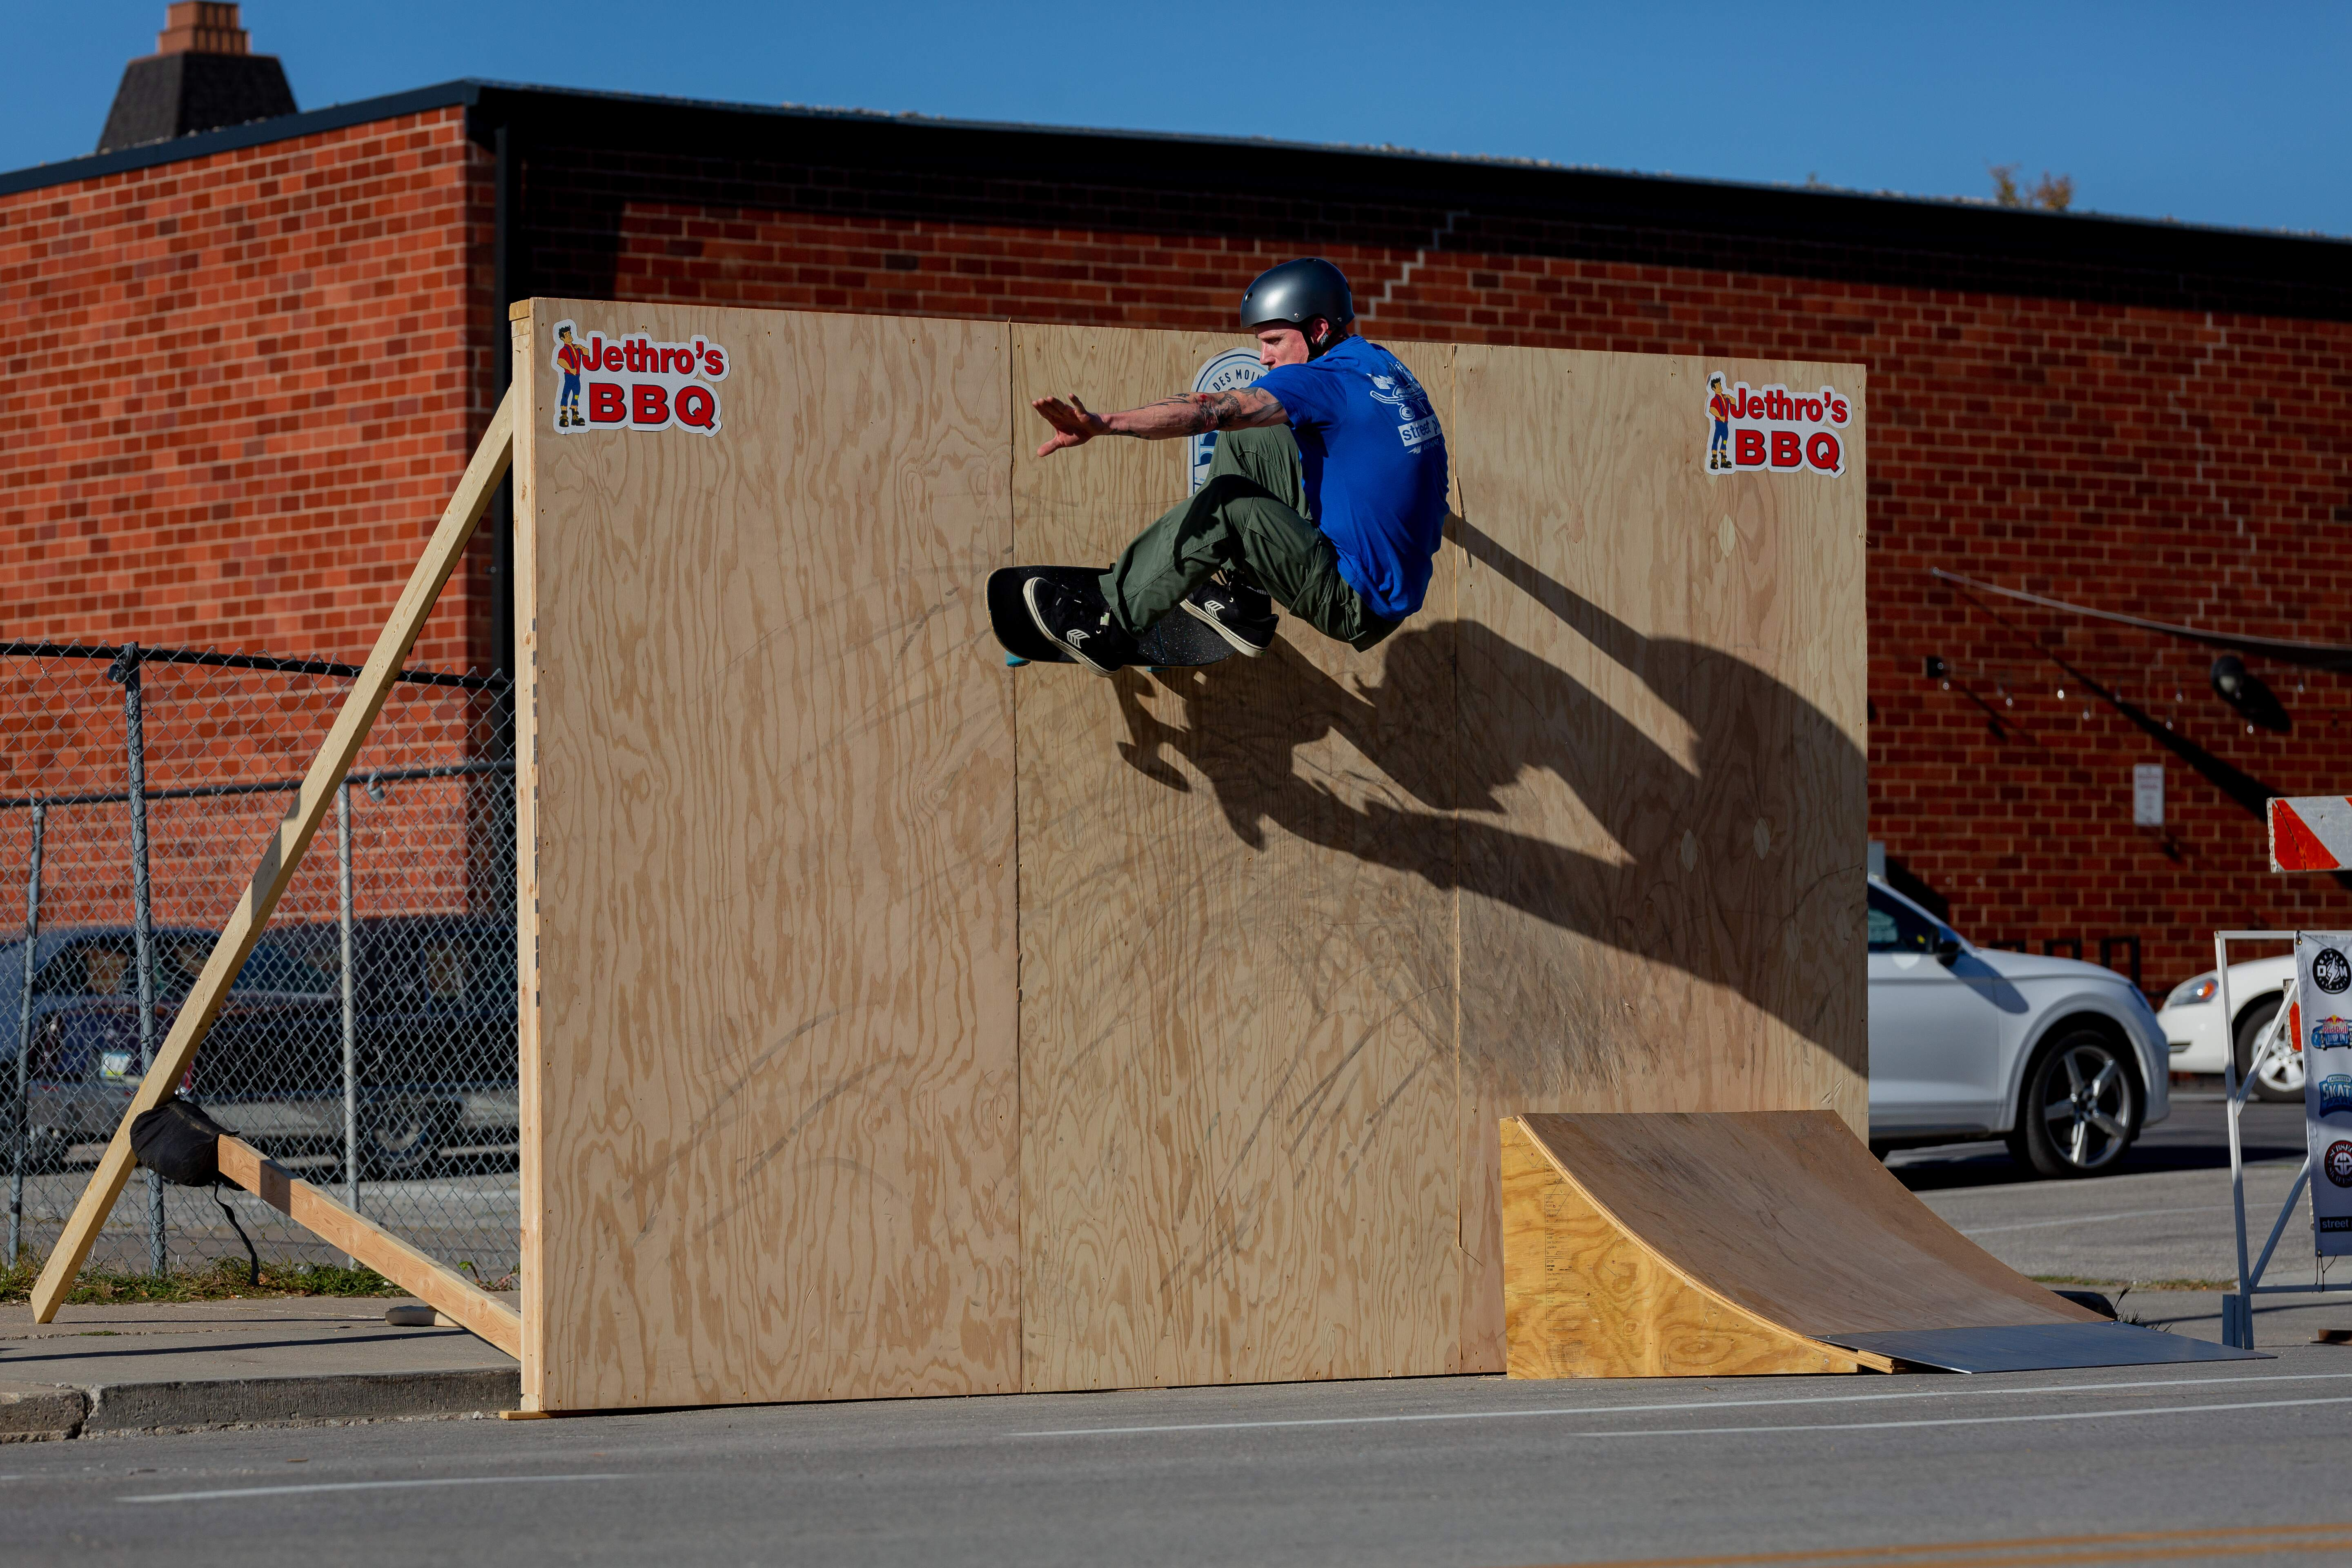 Des Moines Streetstyle Open 2021 - Mike V on the Wall